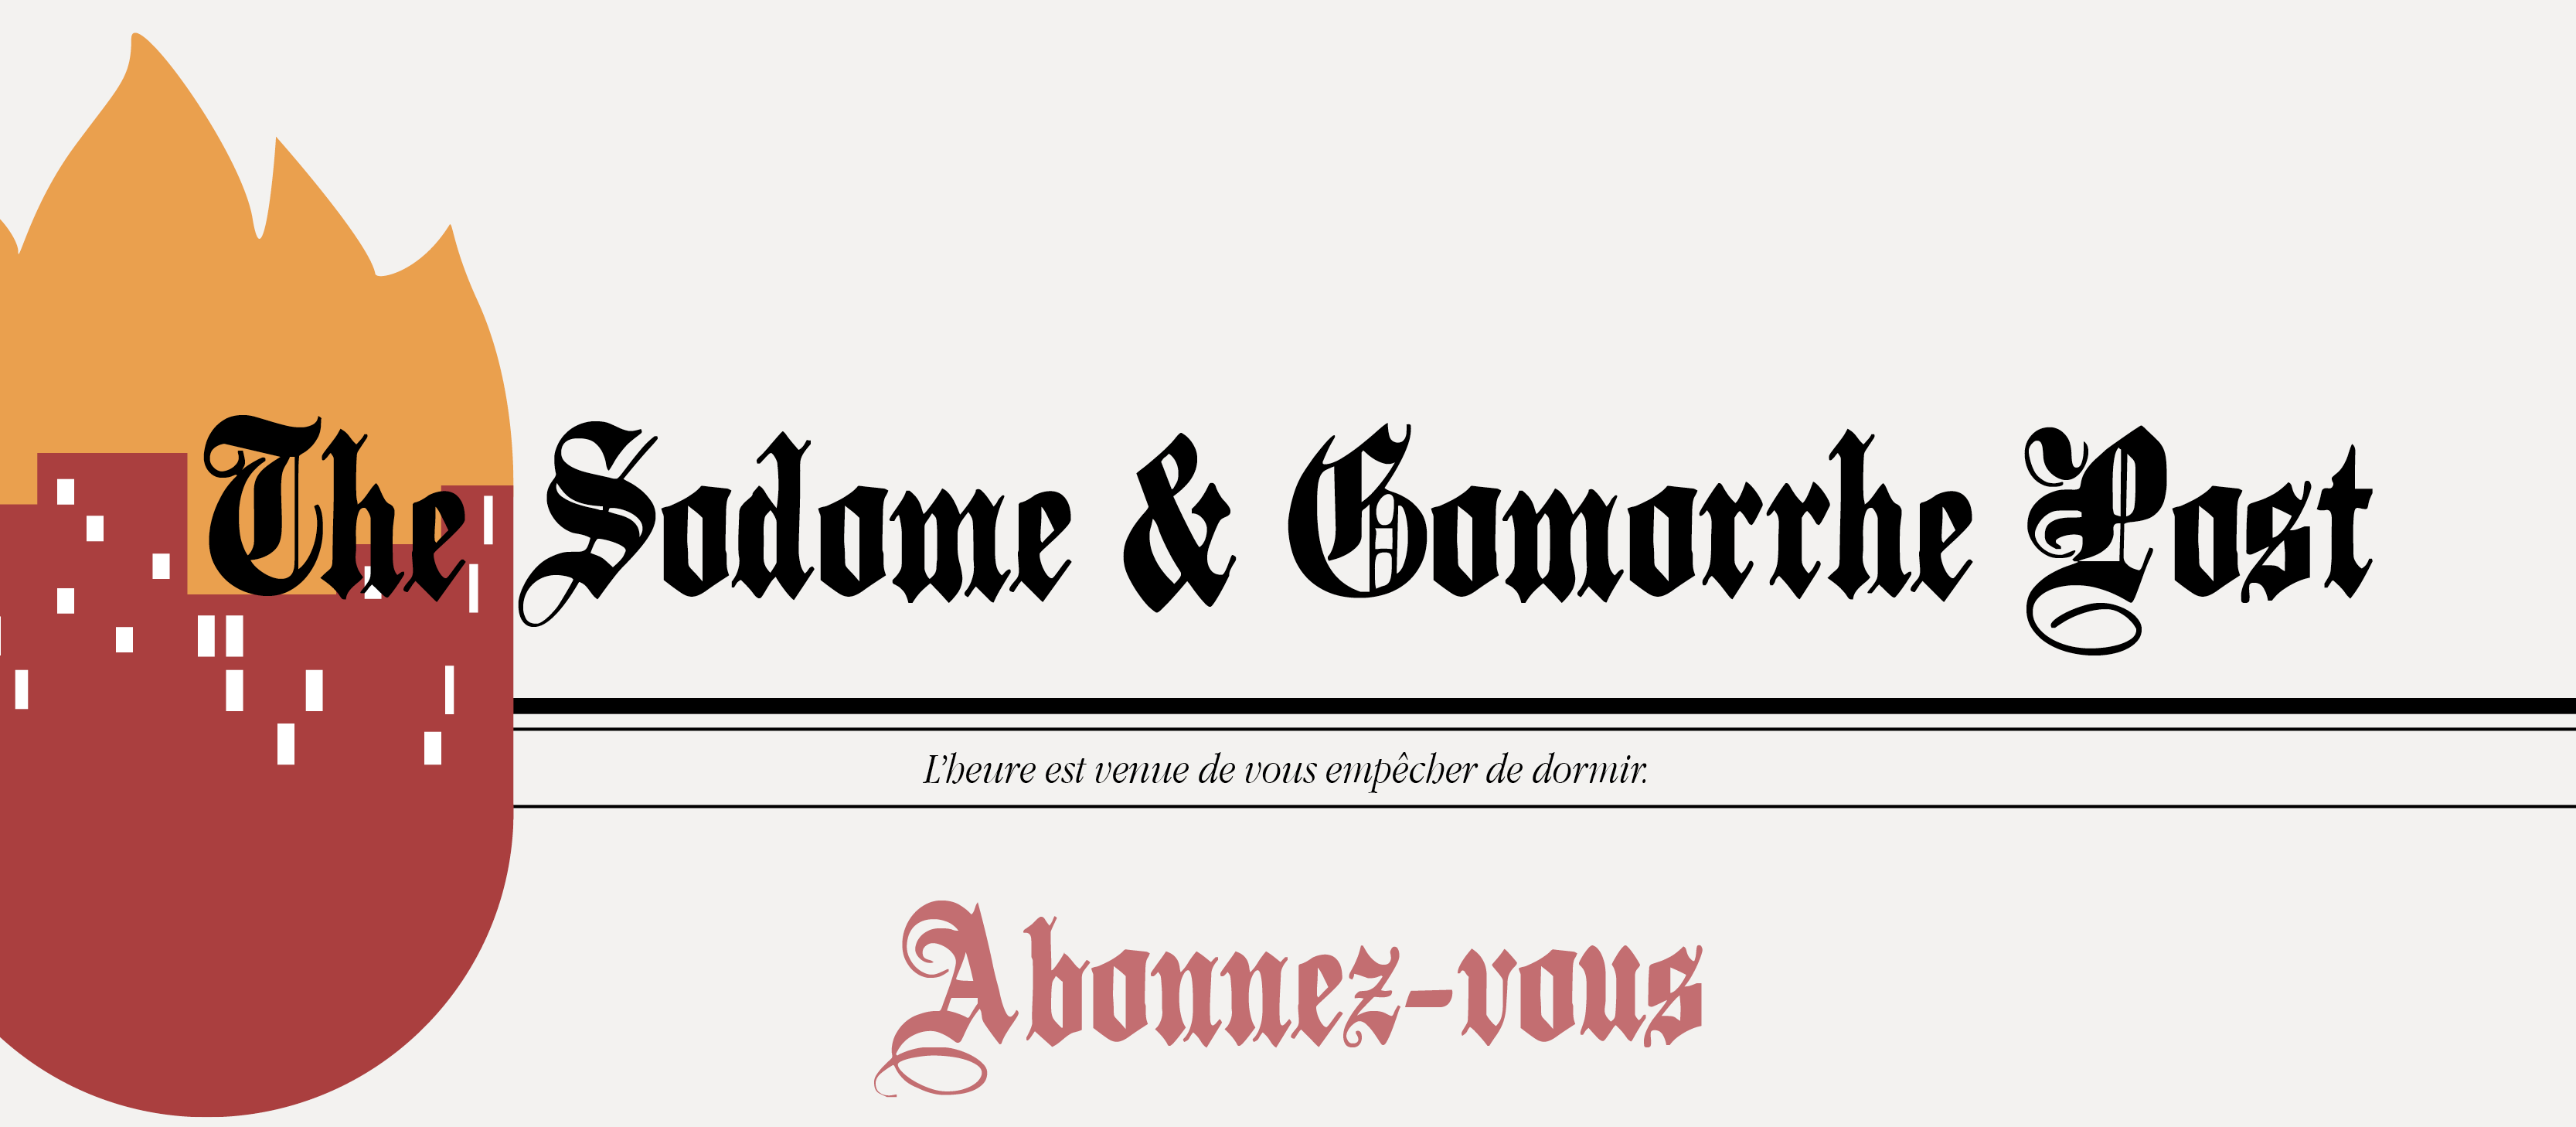 sodome et gomorrhe newsletter